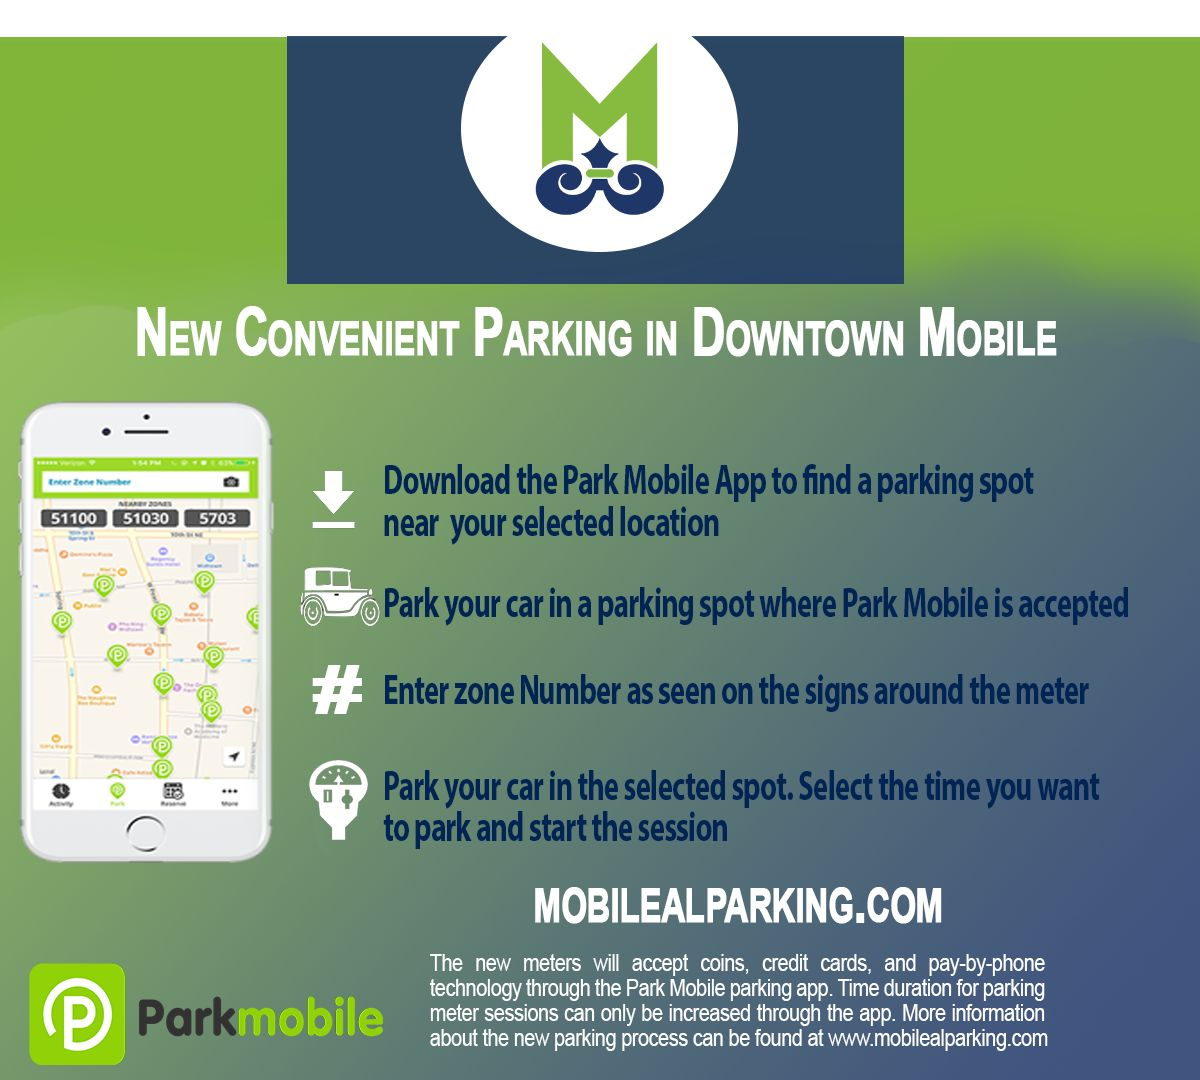 (IMG: City of Mobile) Parking in Downtown Mobile